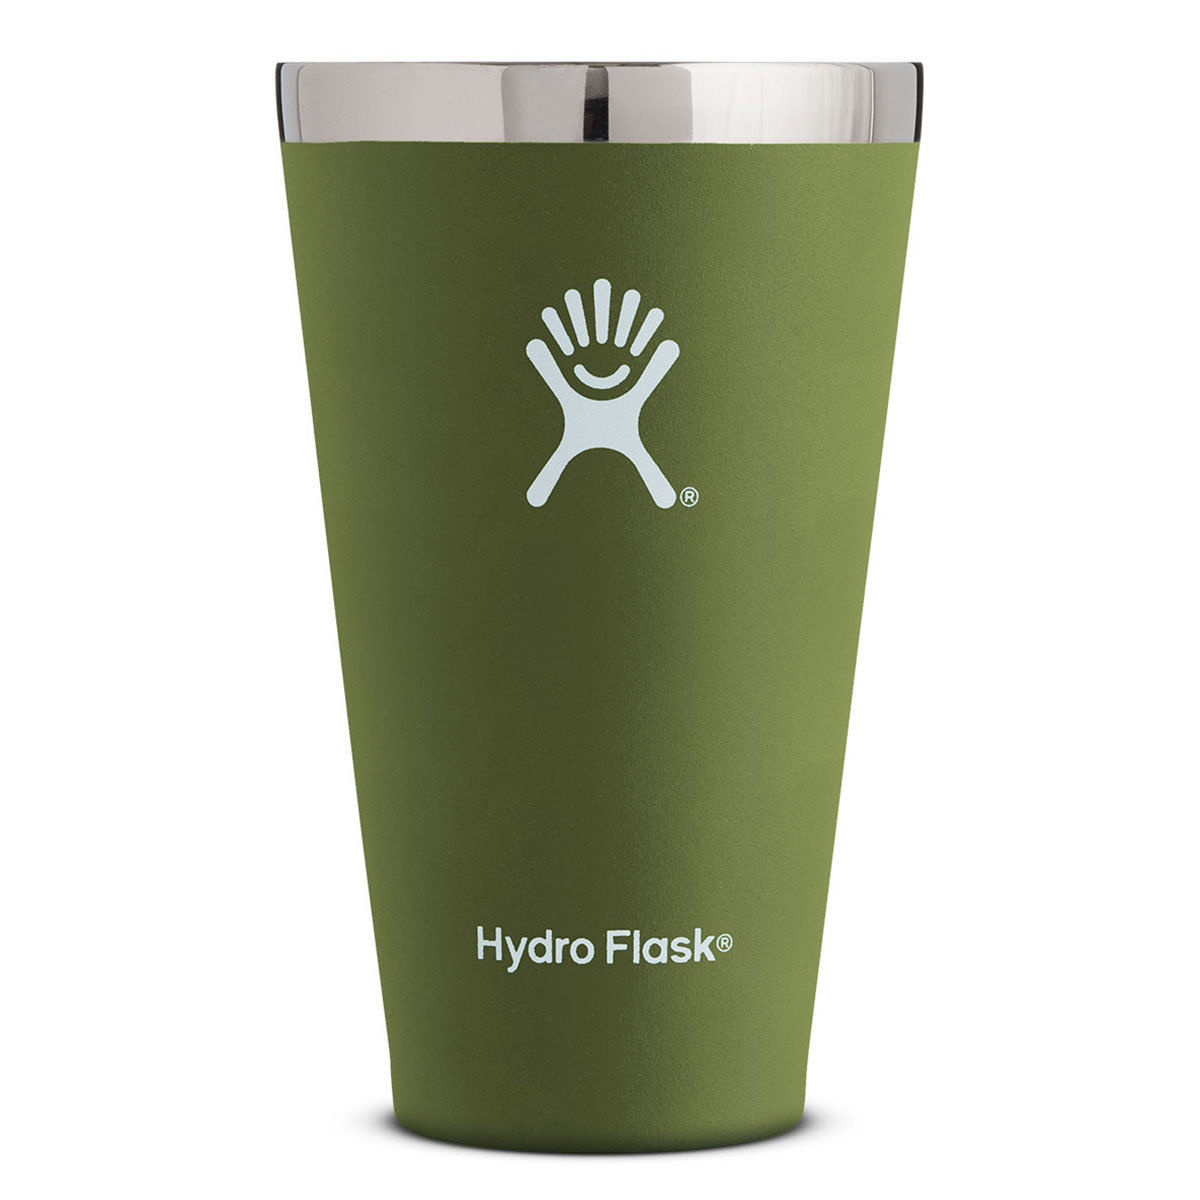 Hydro Flask 16 Oz. True Pint